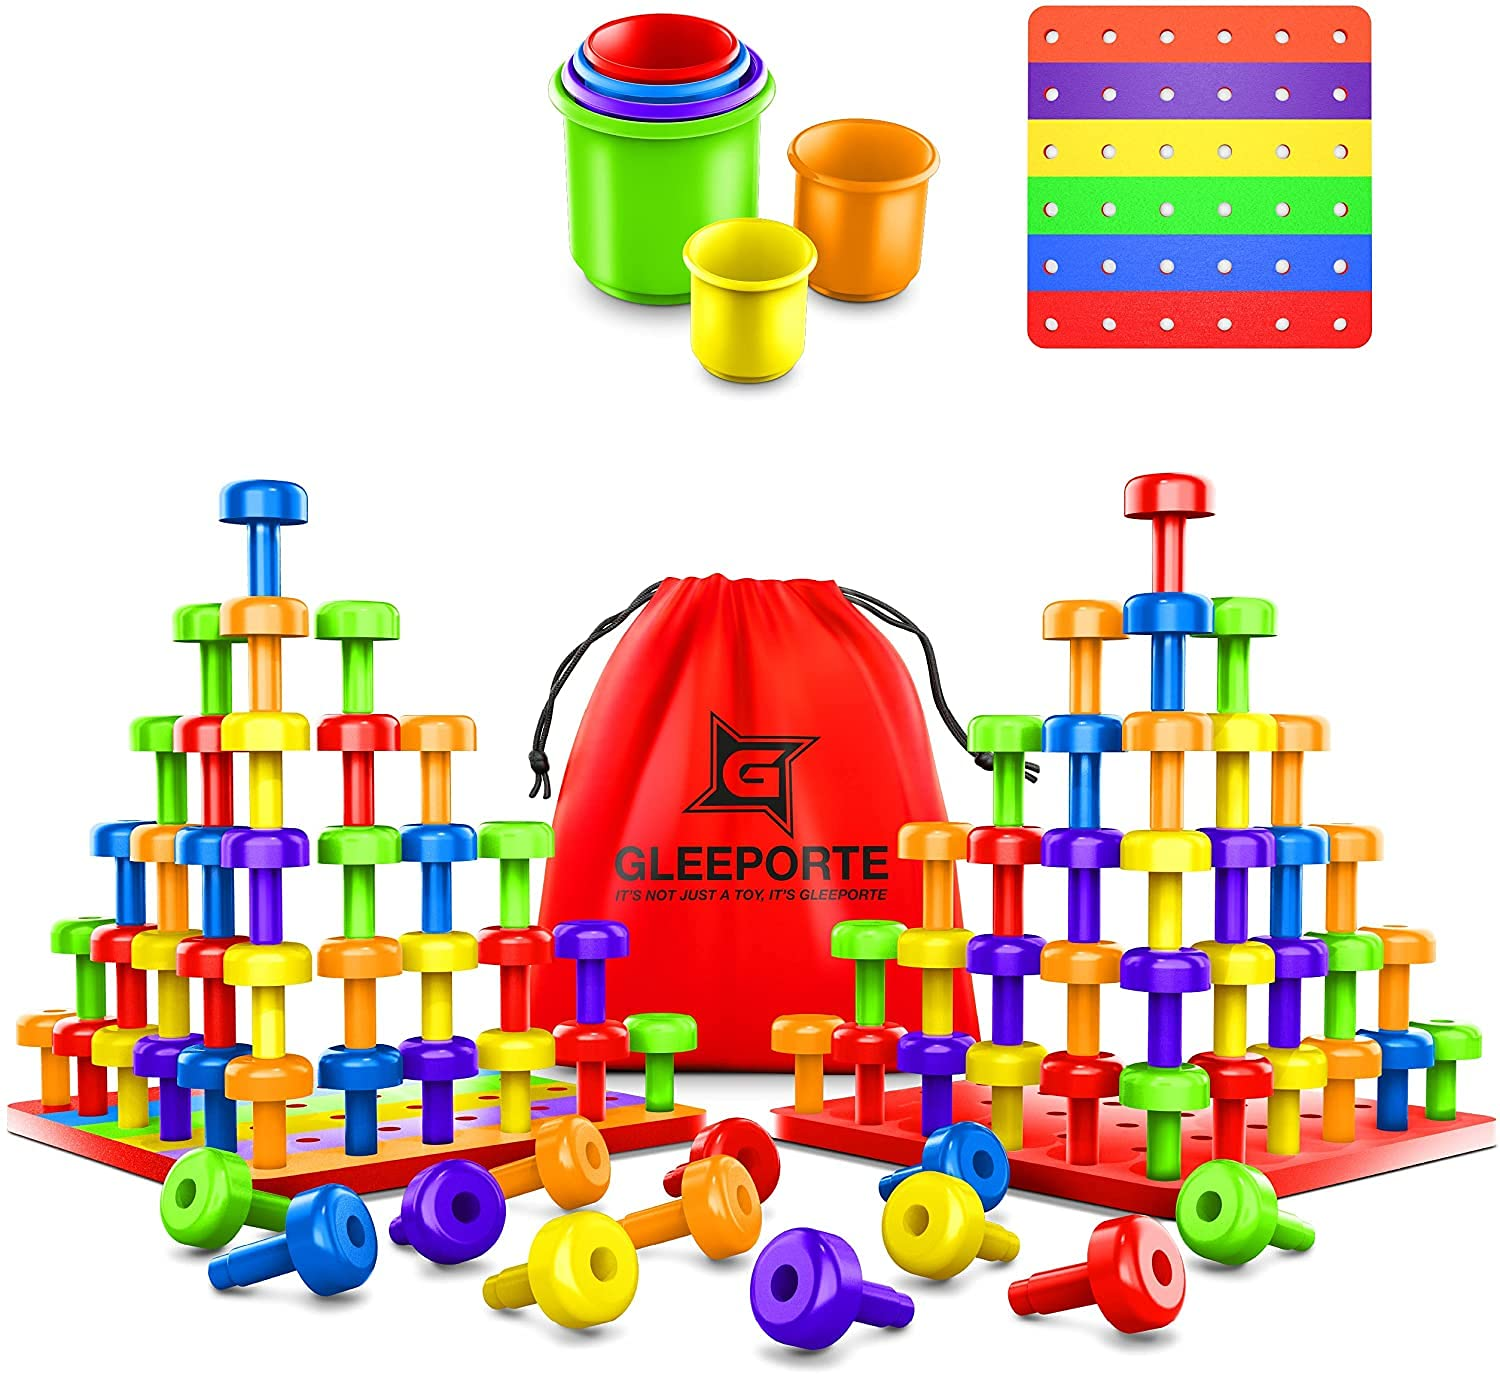 Gleeporte Stacking Peg Board Set Toy JUMBO PACK Montessori Occupational Therapy Early Learning For Fine Motor Skills, Ideal for Toddlers and Preschooler, Includes 60 Plastic Pegs & 3 Boards Storage Bag